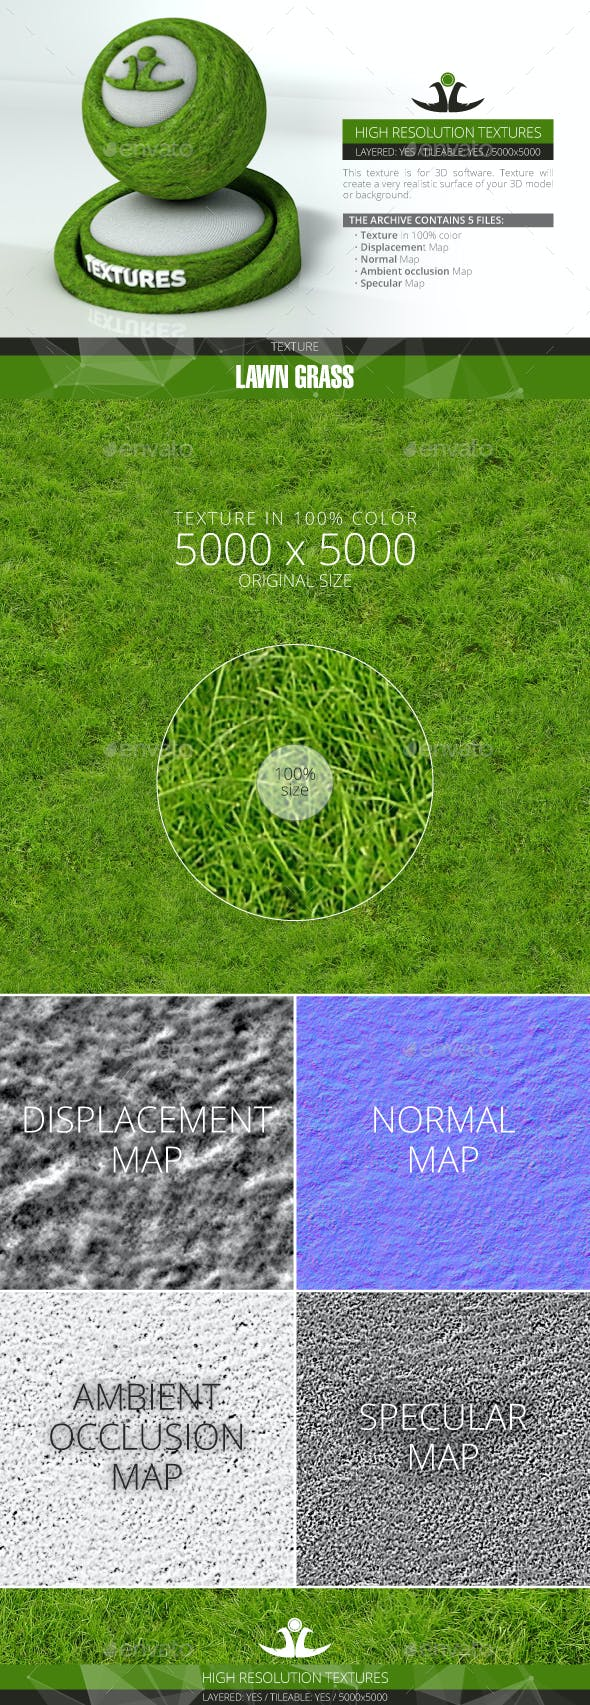 Lawn Grass 7 - 3DOcean Item for Sale